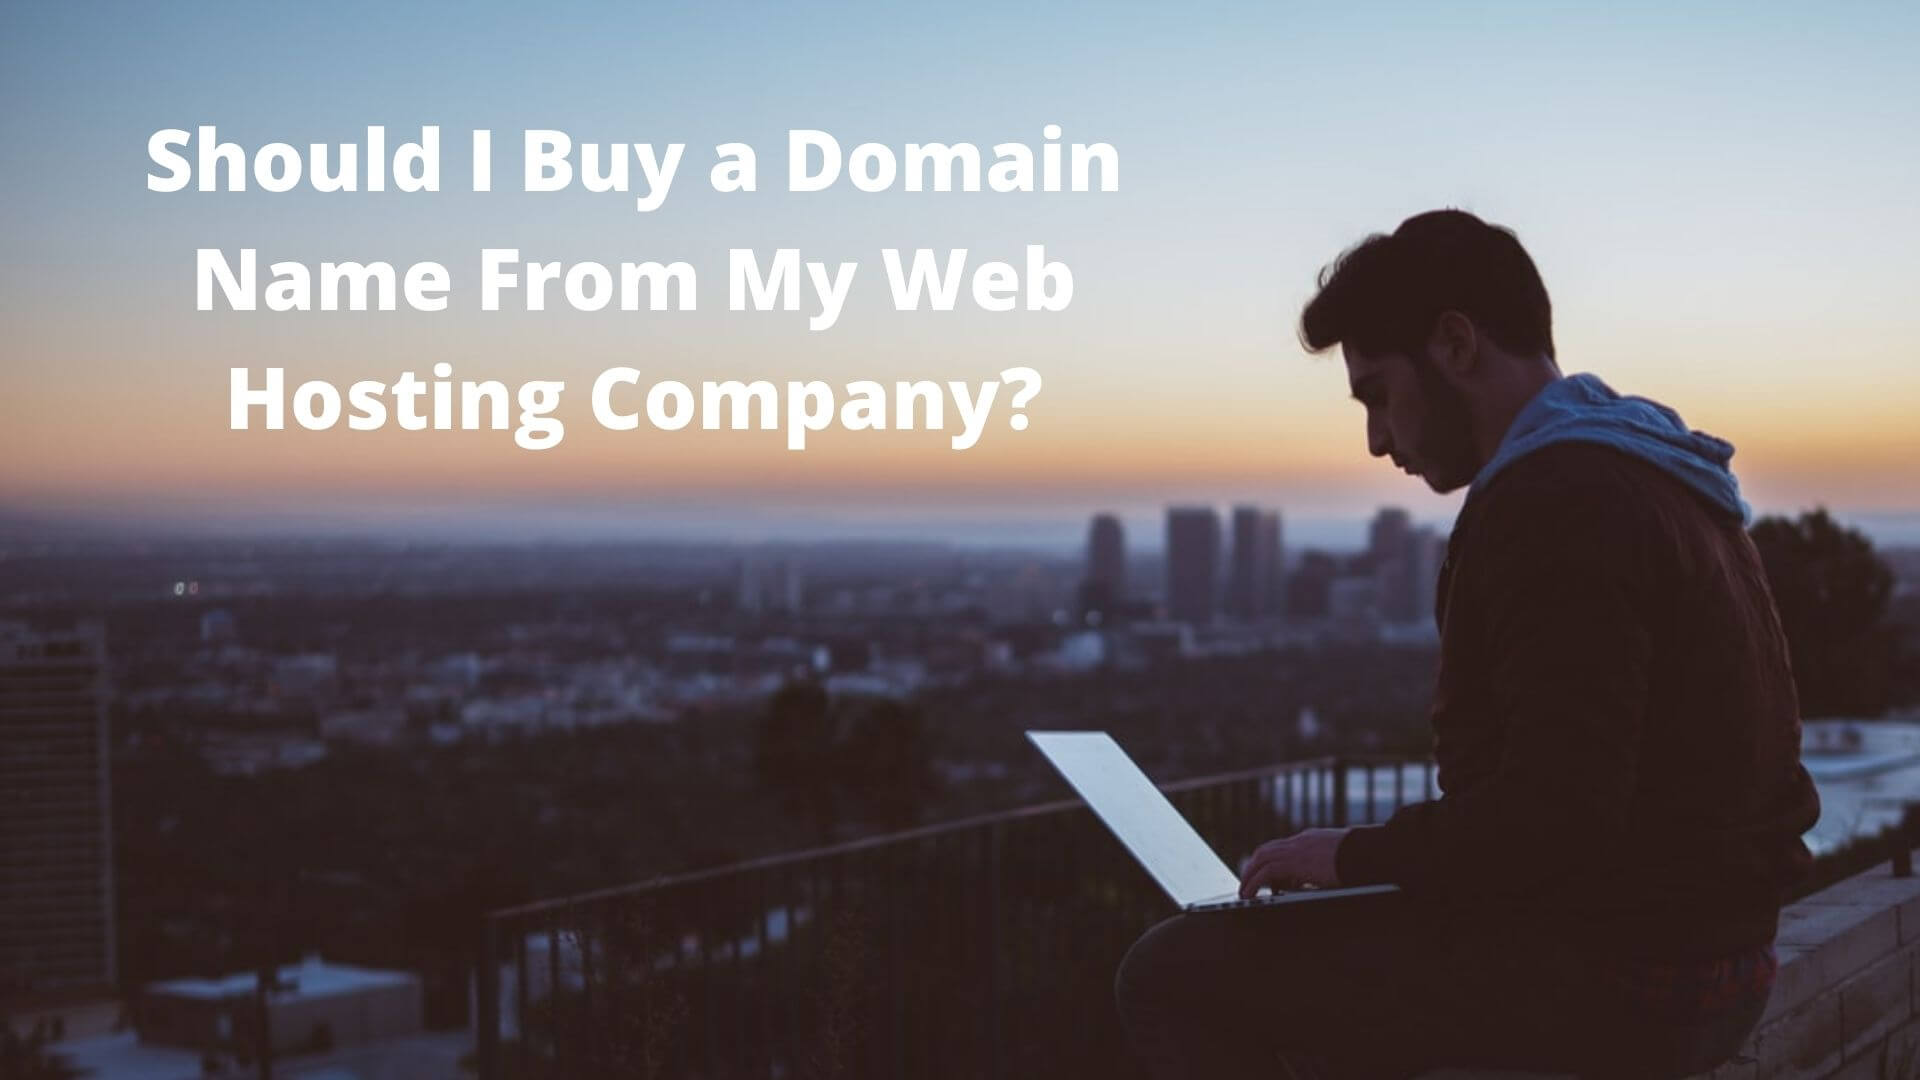 Should-I-Buy-a-Domain-Name-From-My-Web-Hosting-Company_-1